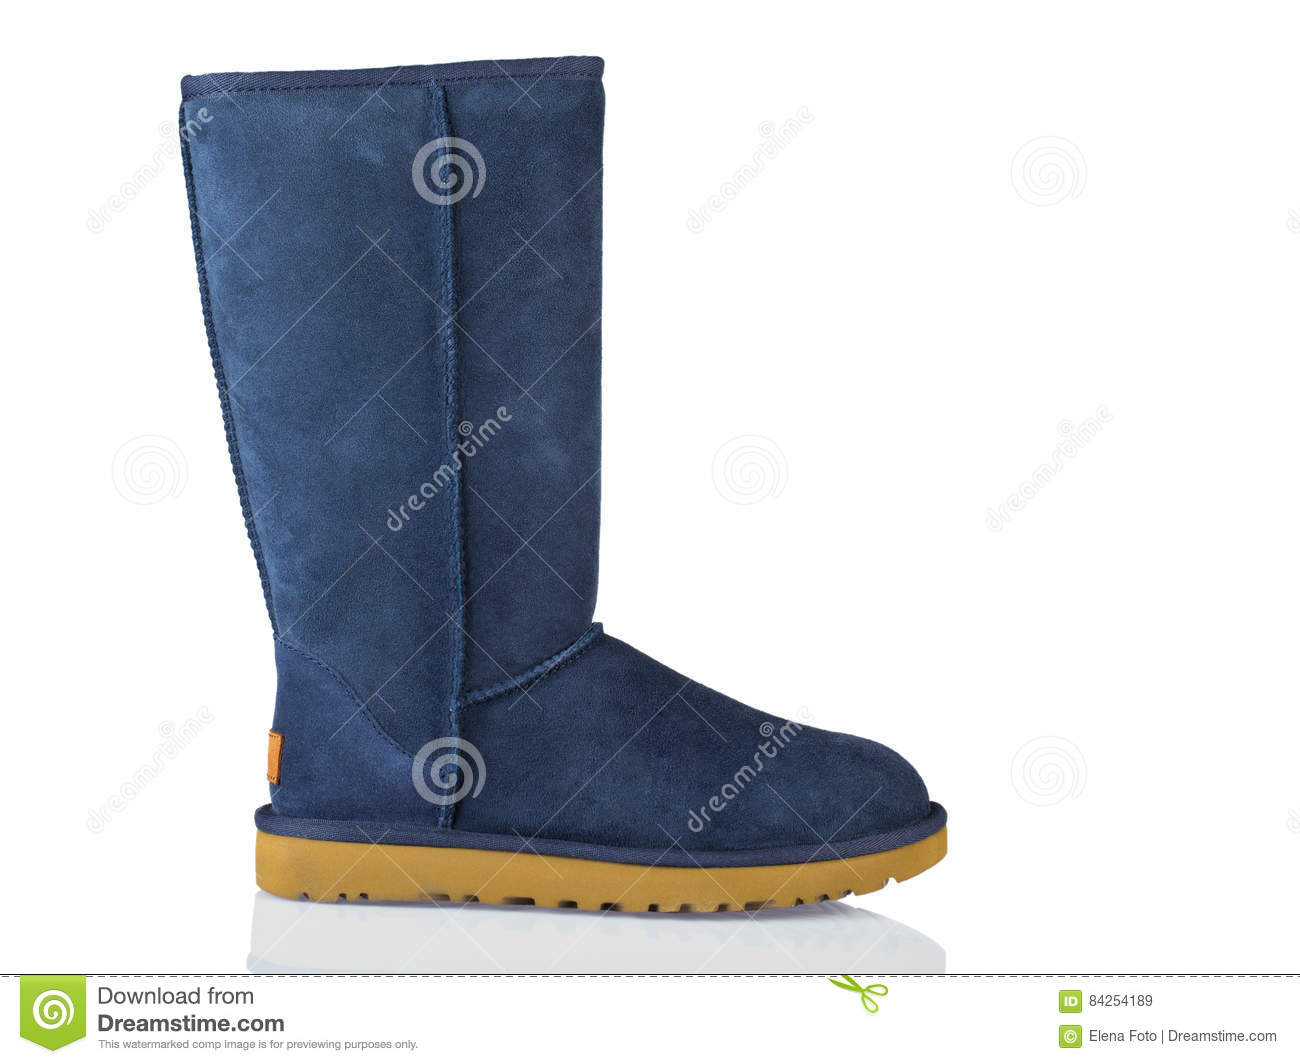 Ugg new classic tall stock photo image 84254189 for New model boot